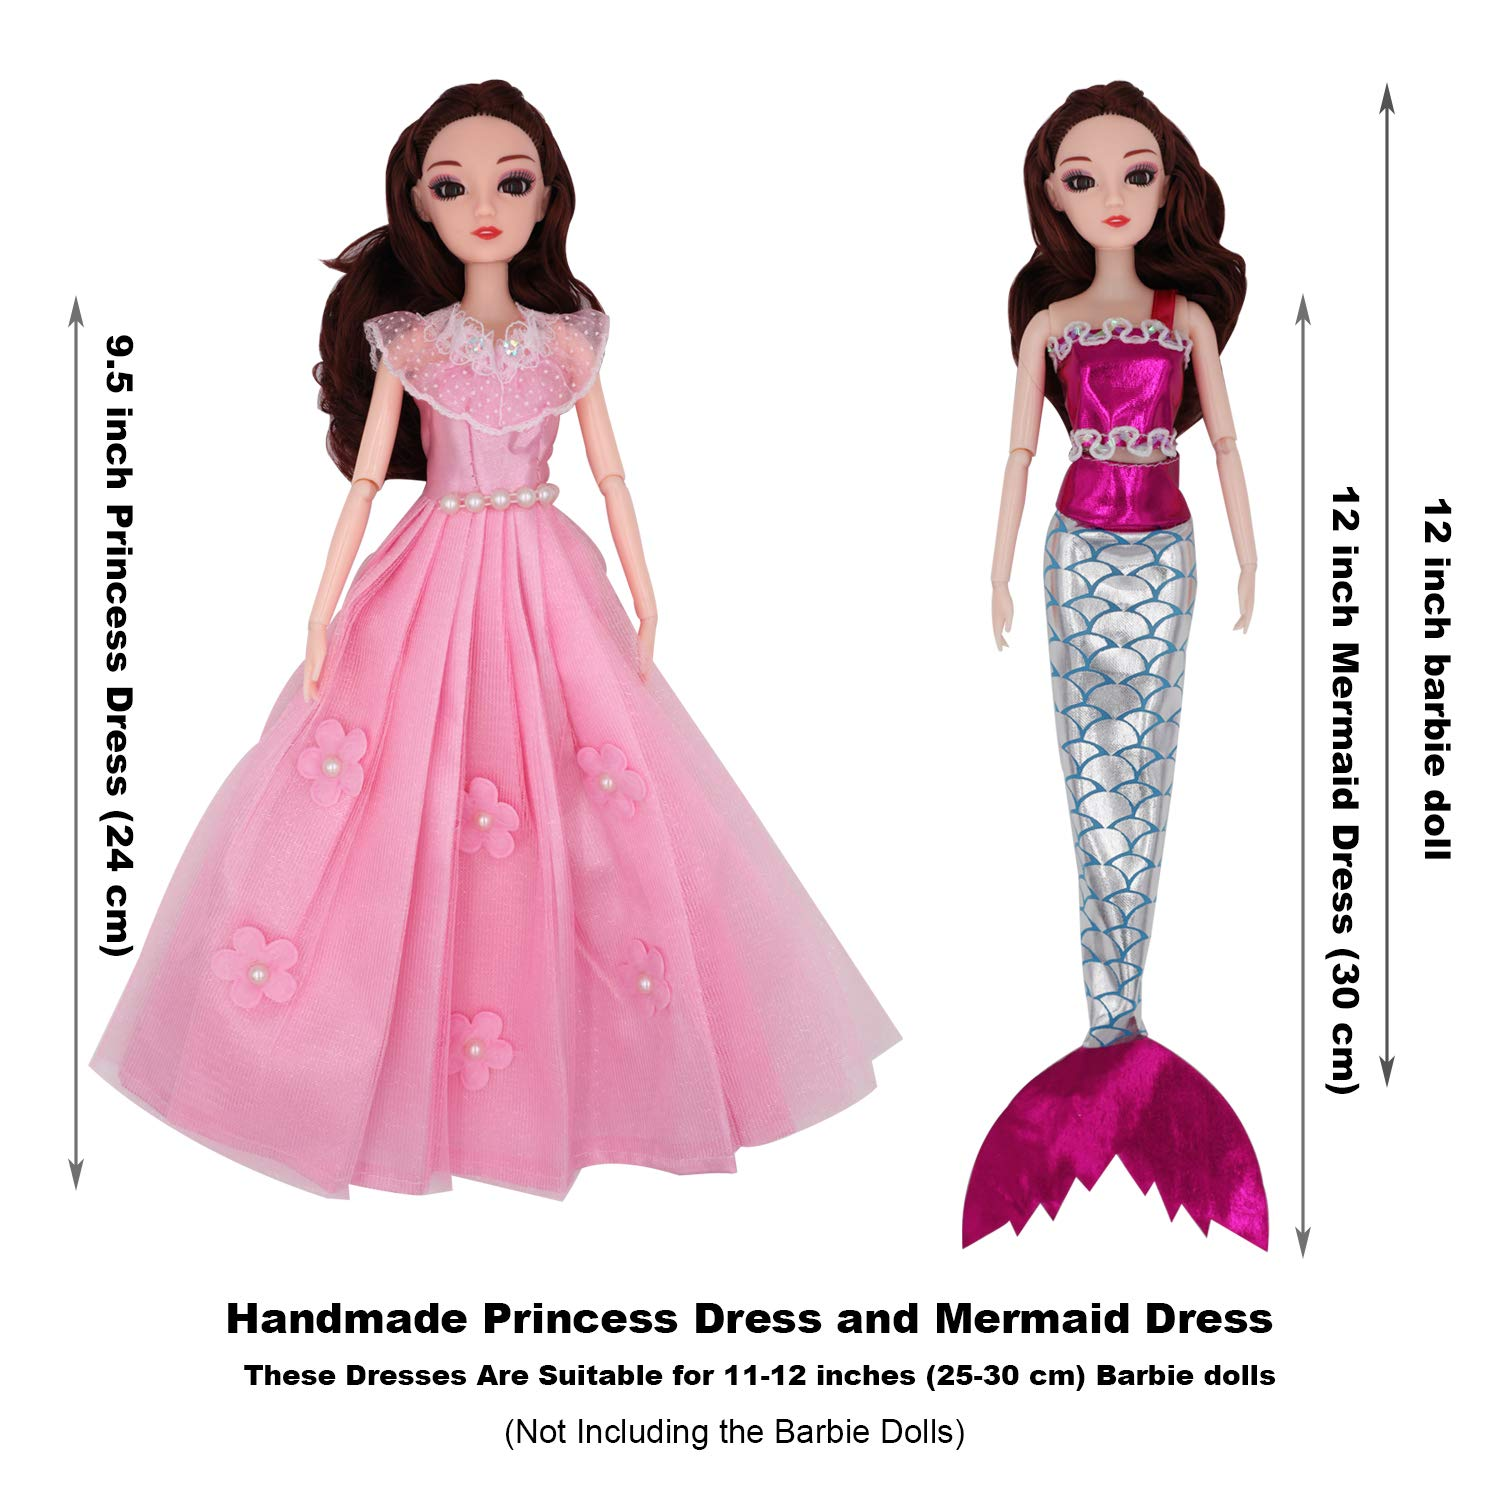 0480920c7b611 EuTengHao 89Pcs Doll Clothes and Accessories for Barbie Dolls Set Include  10 Different Party Grown Outfits for Barbie Doll, 77 Doll Accessories,1 ...